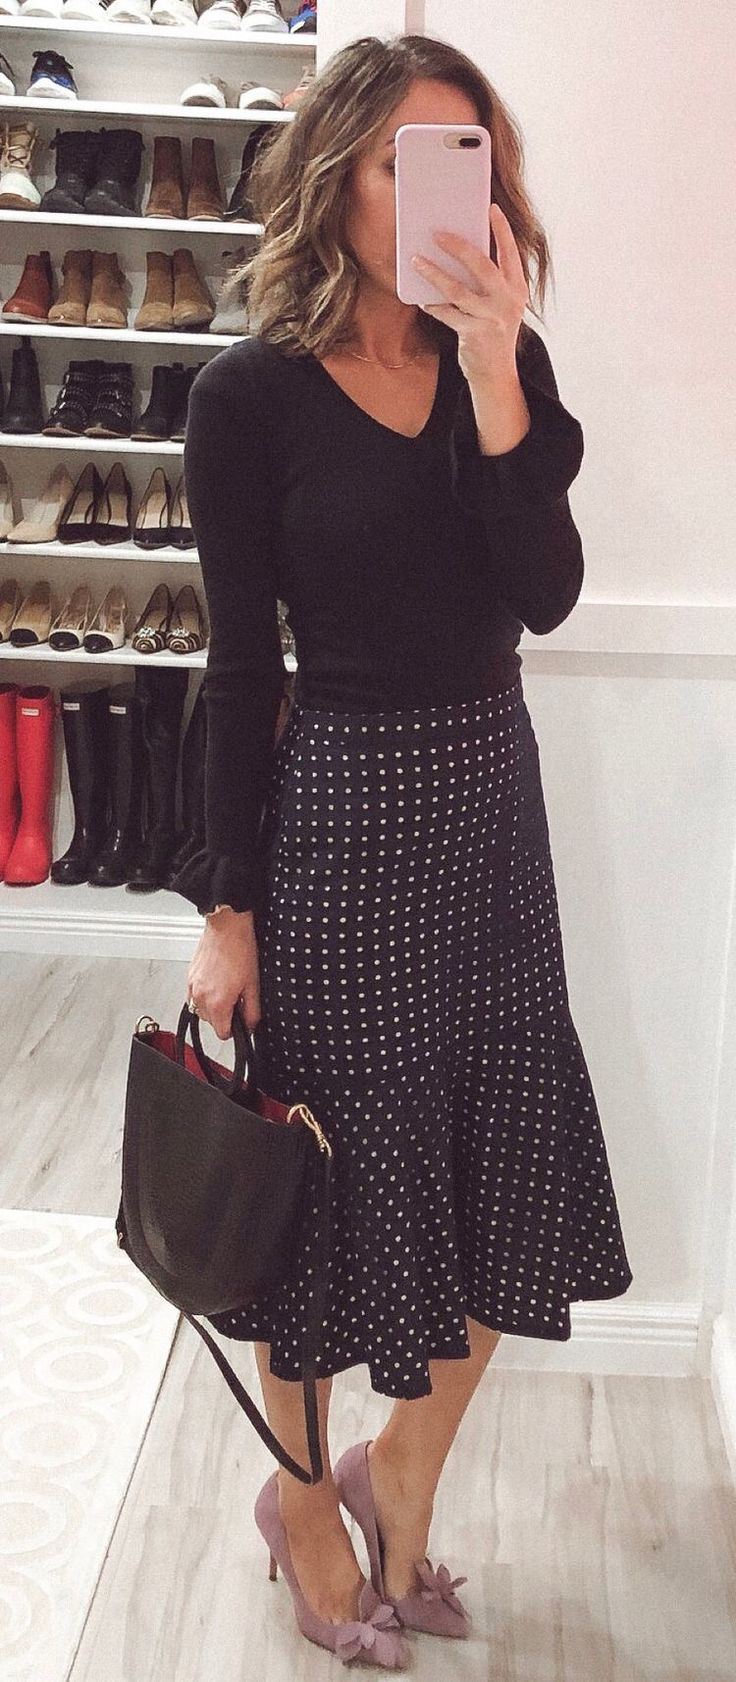 Classy Black Outfits